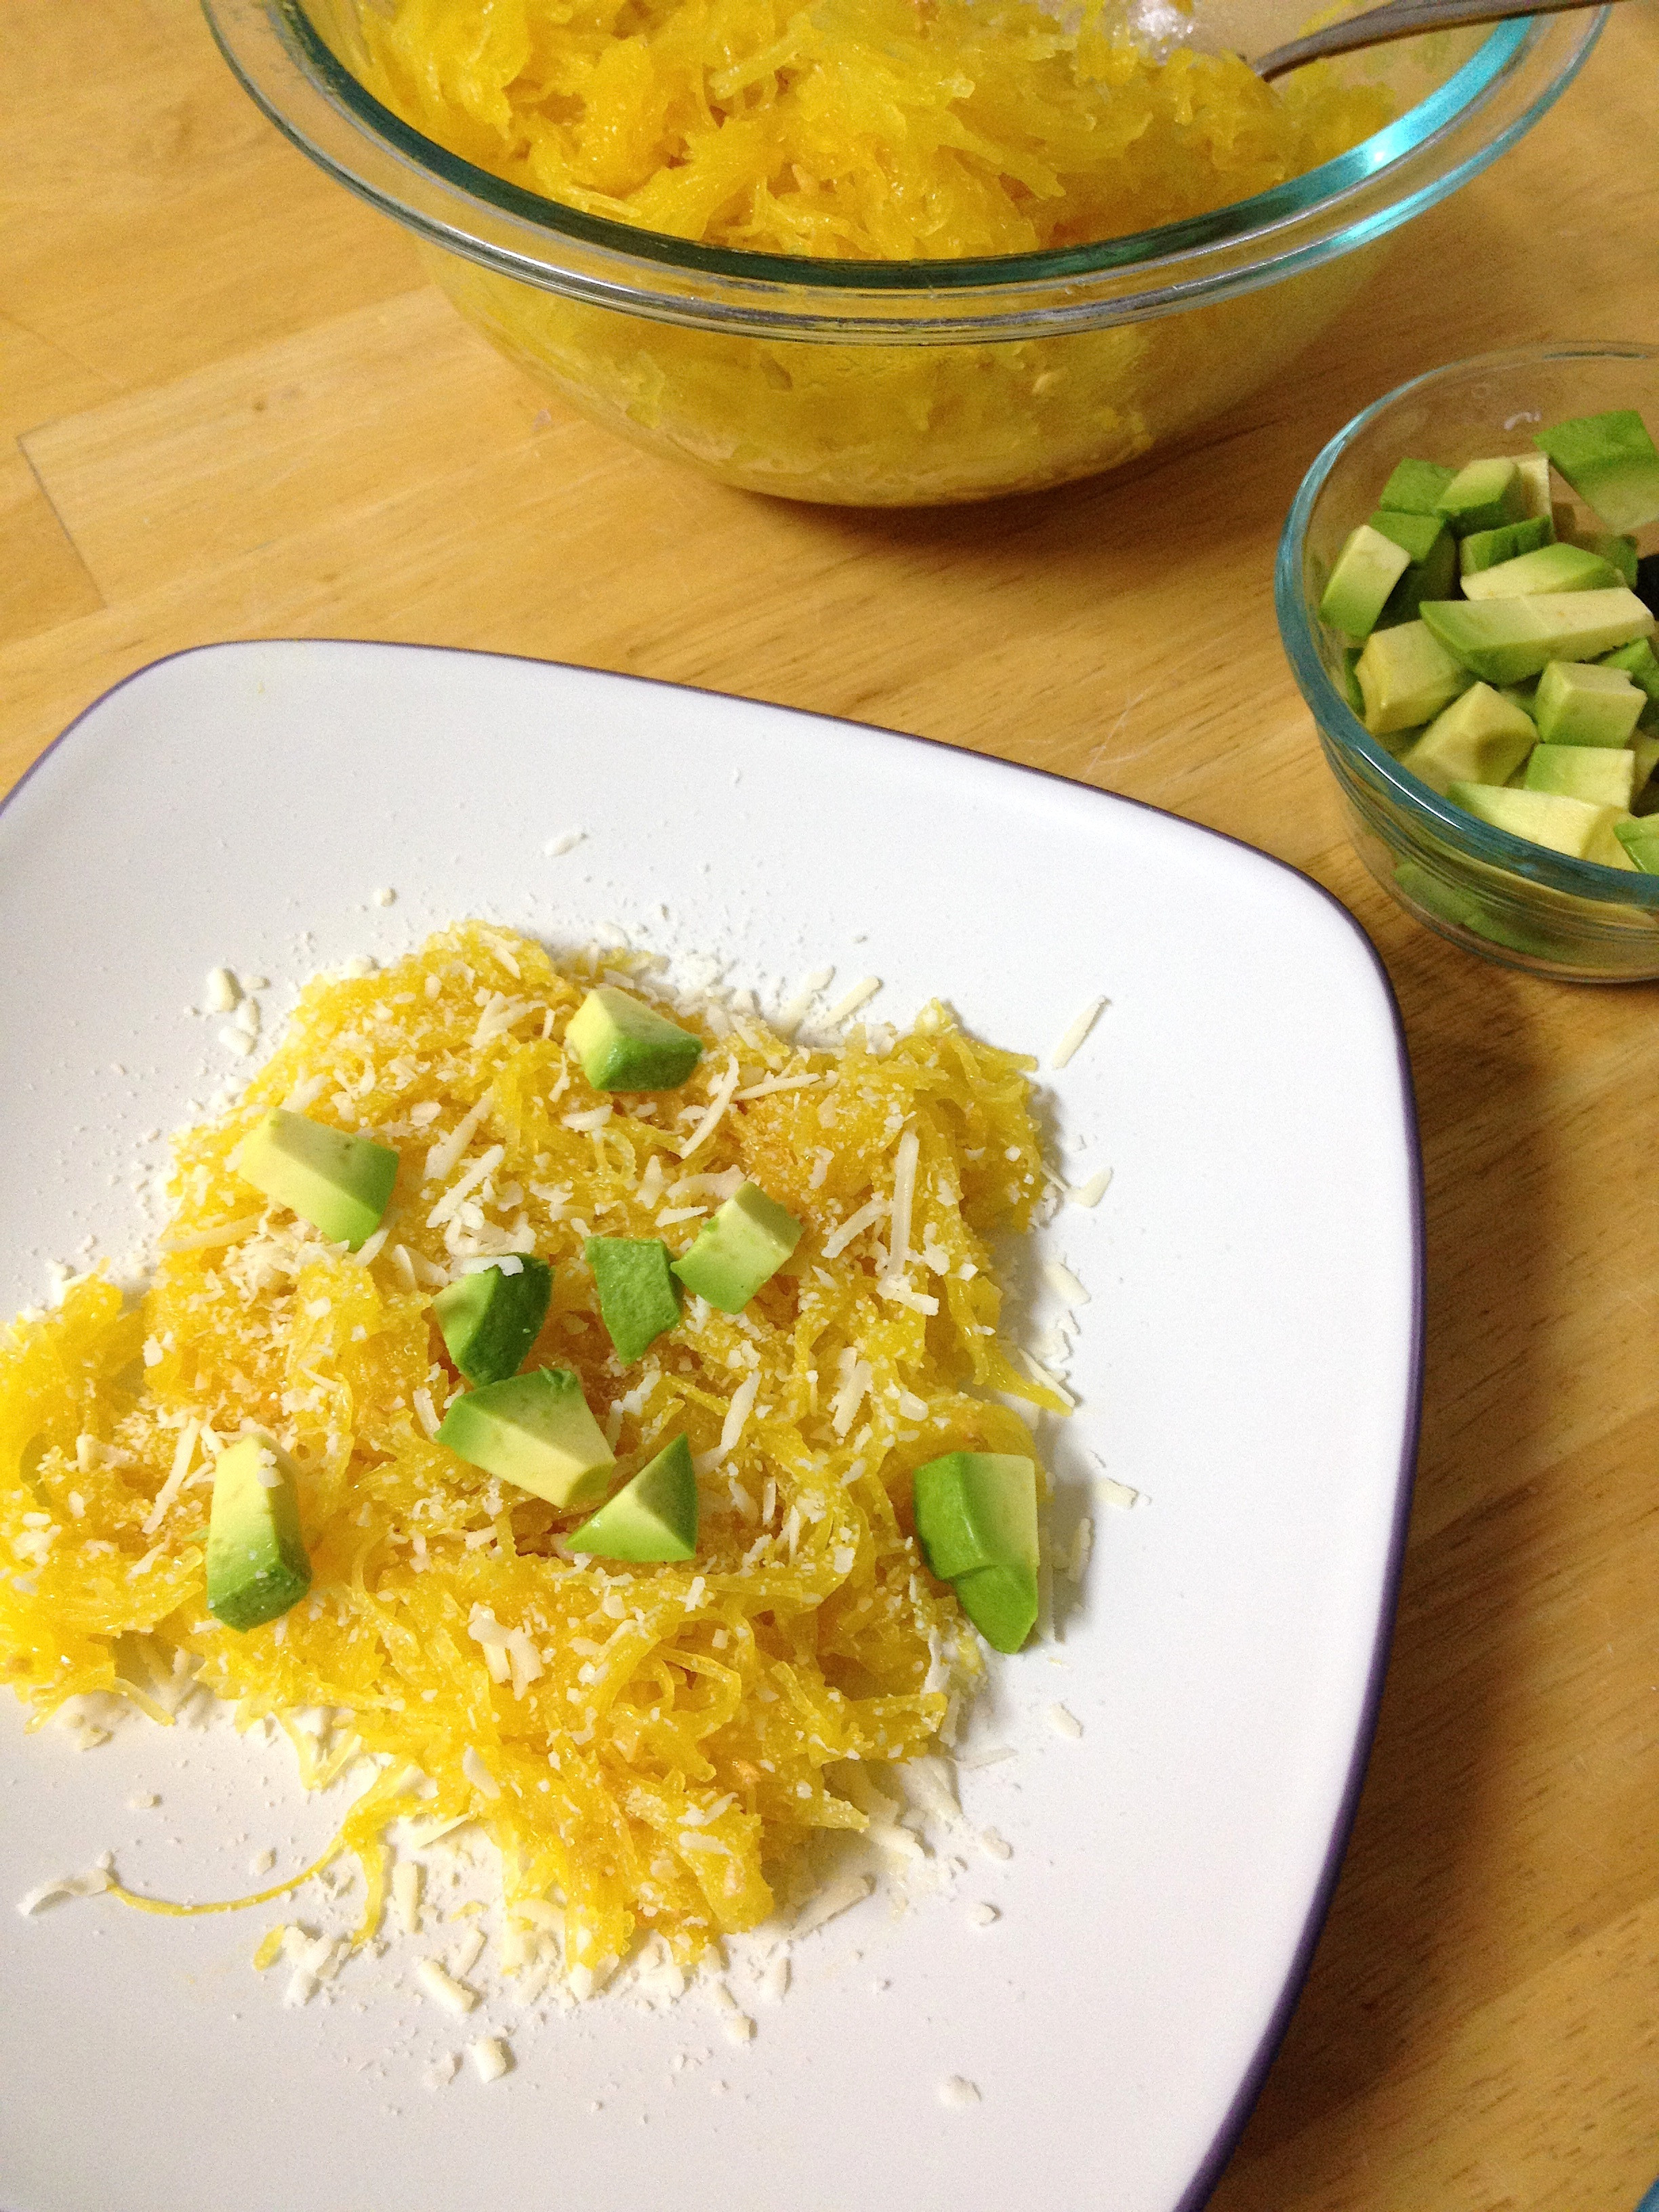 Healthy Side Dishes For Dinner  Spaghetti Squash with Avocado and Asiago